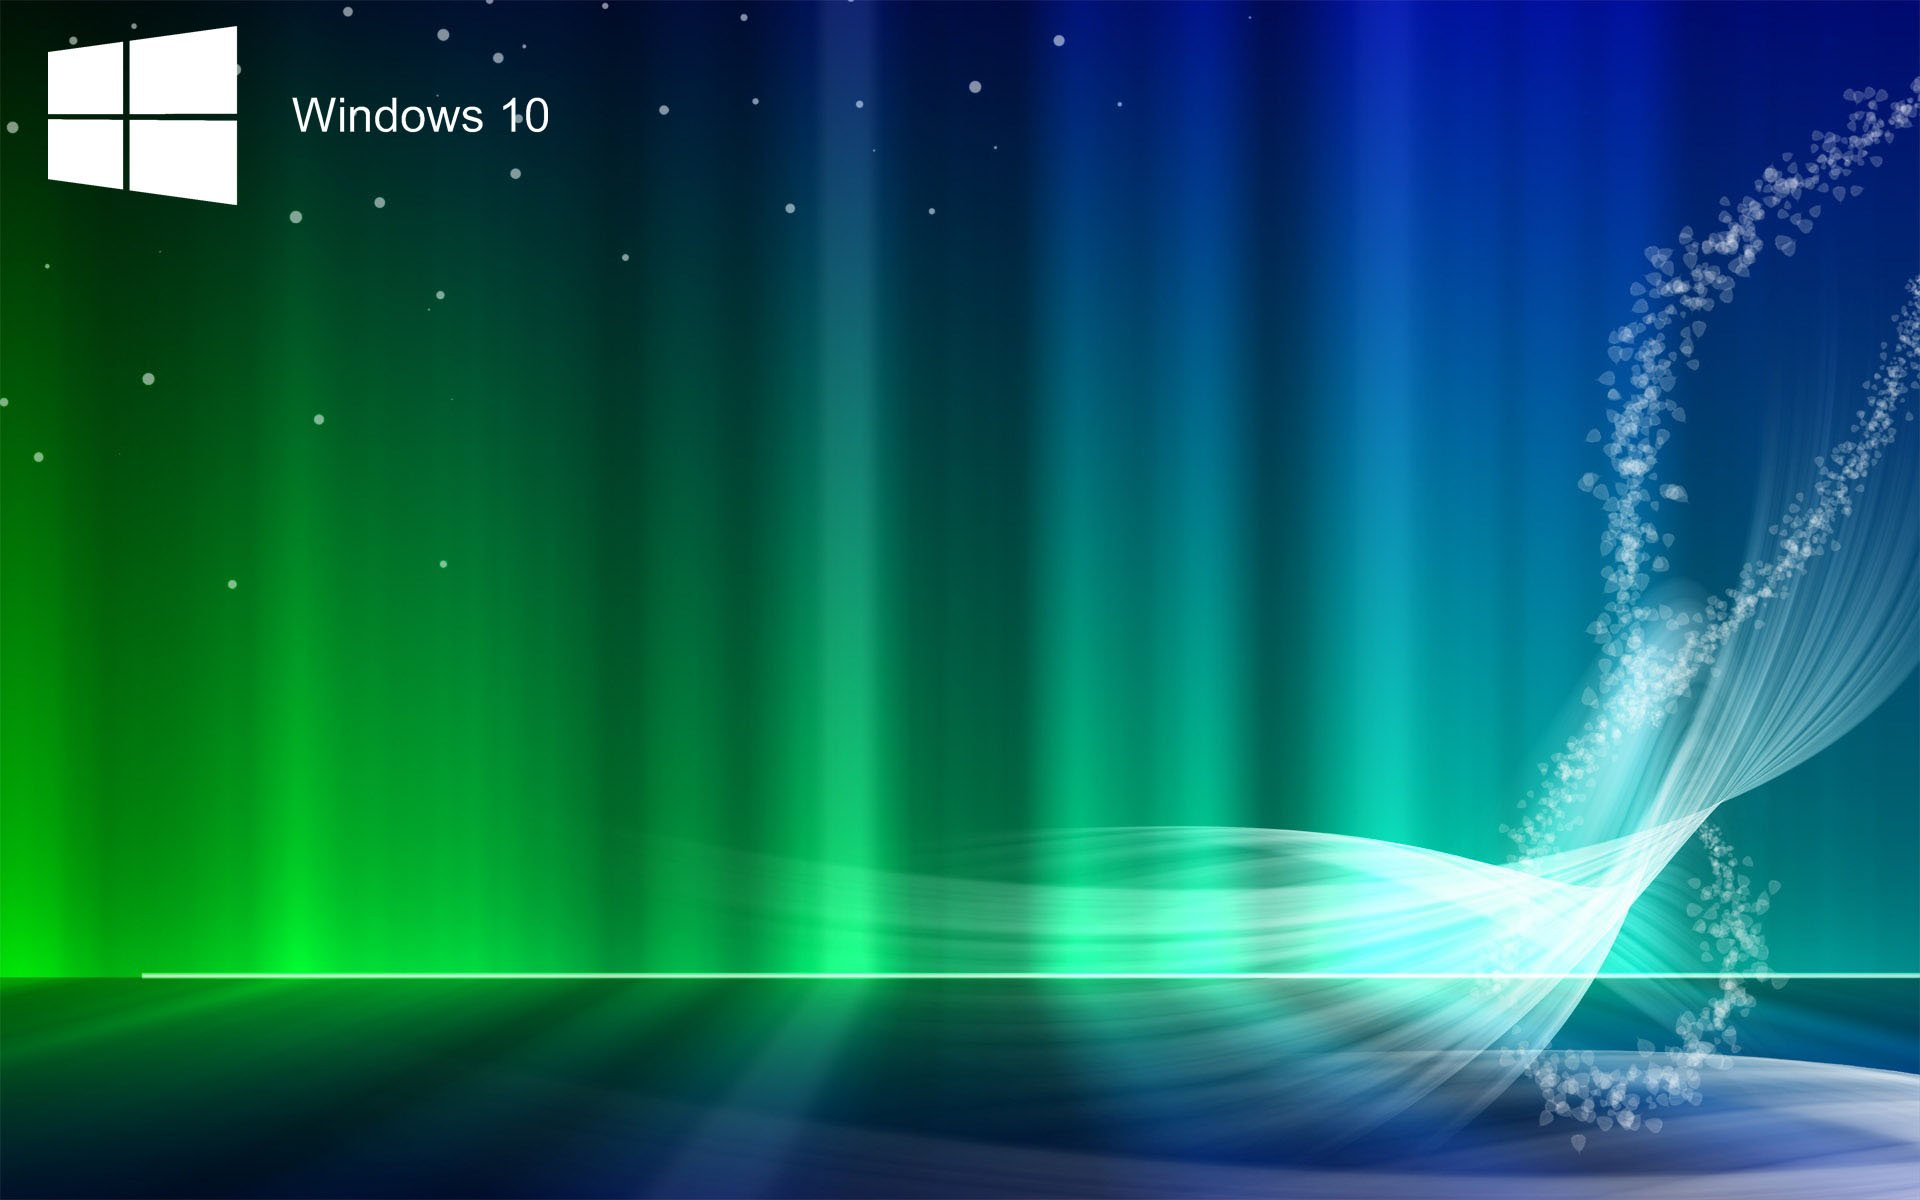 File attachment for New Wallpaper Windows 10 in HD quality 1920x1200